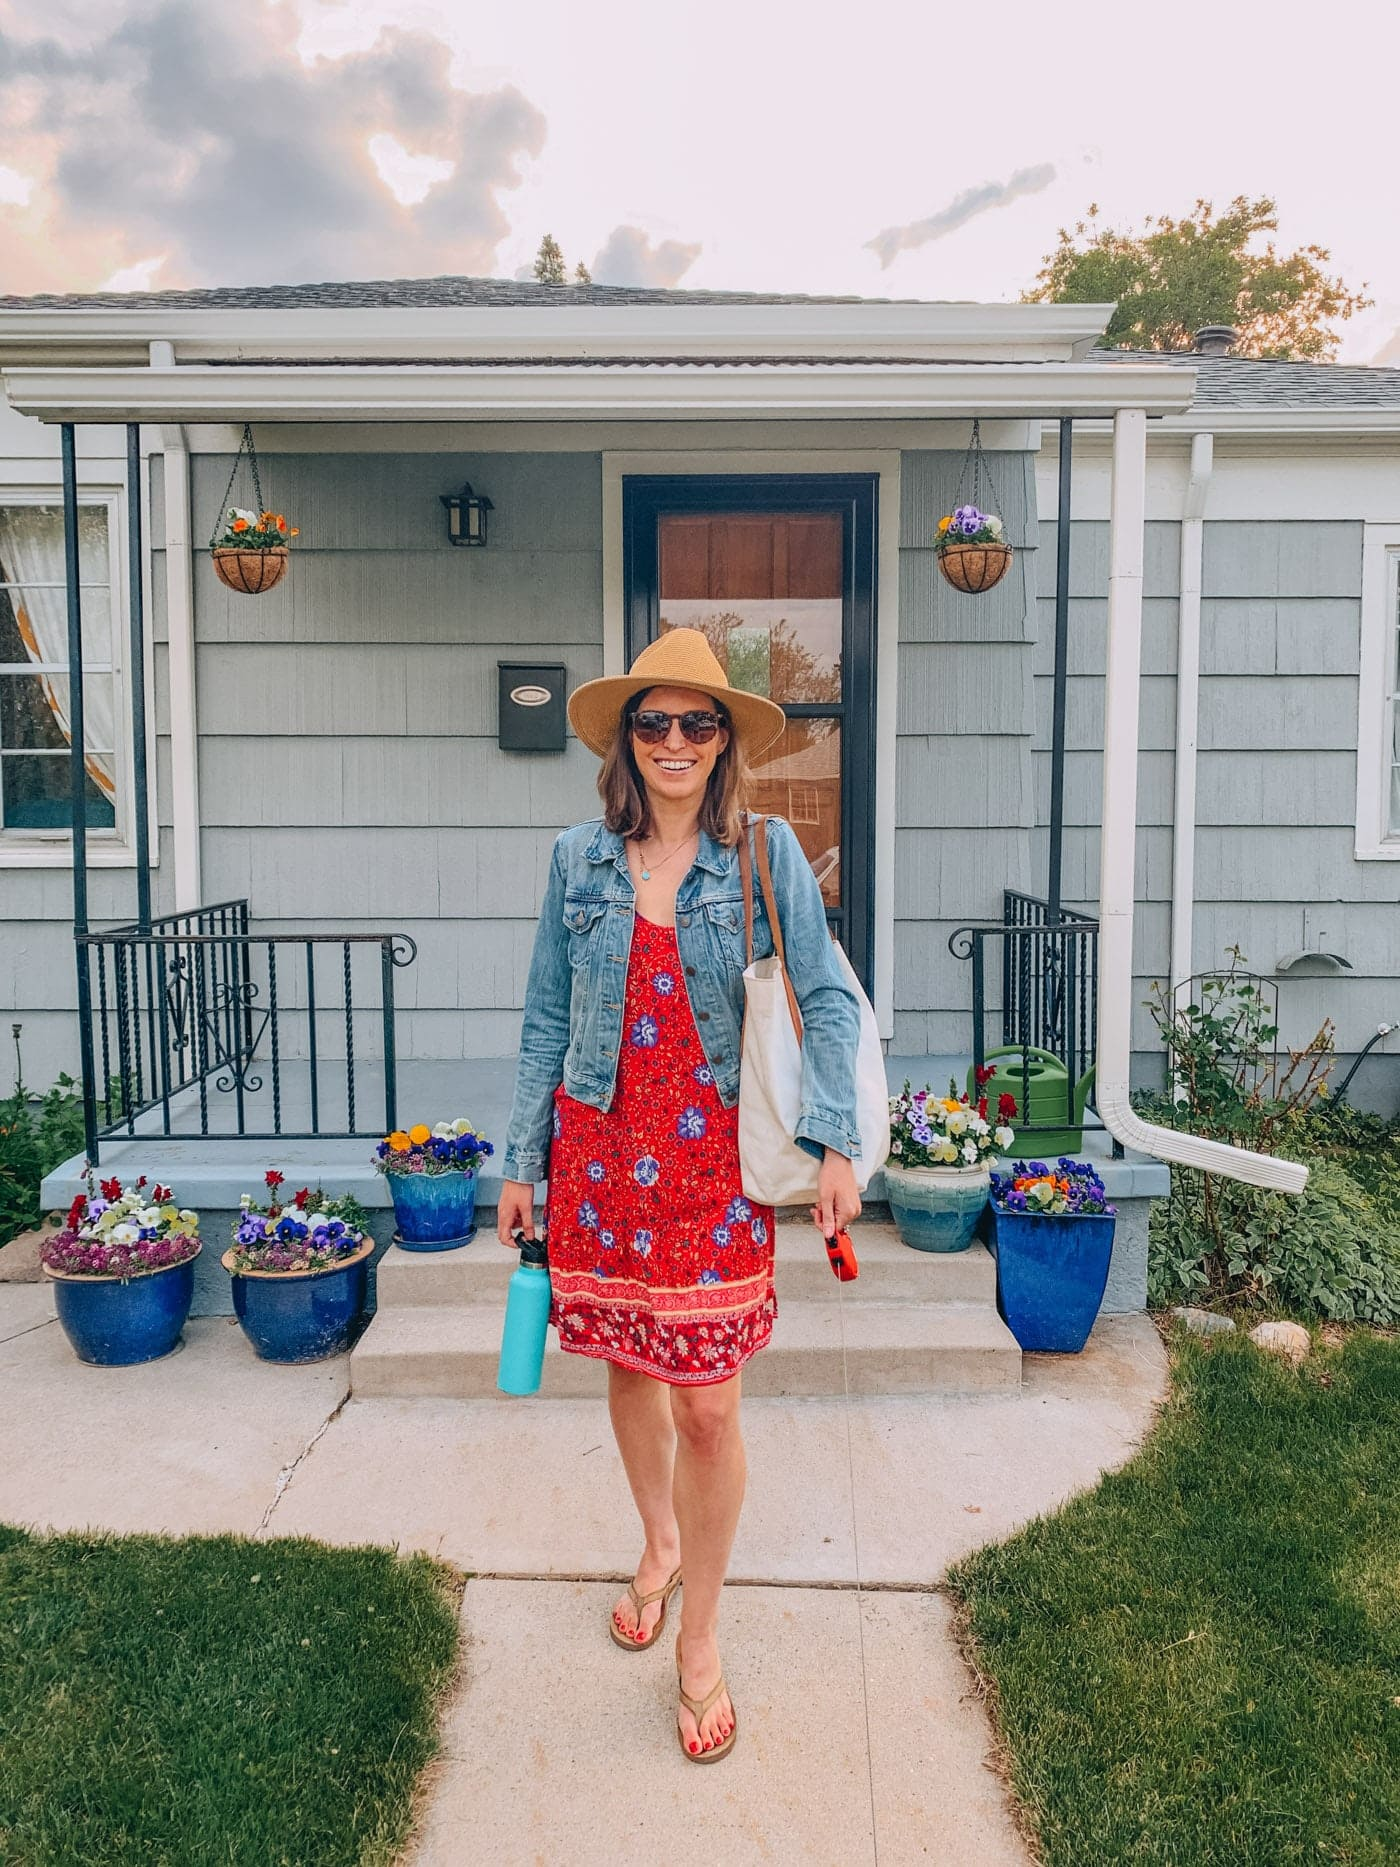 Wearing a Red floral sundress with jean jacket and wide brim hat